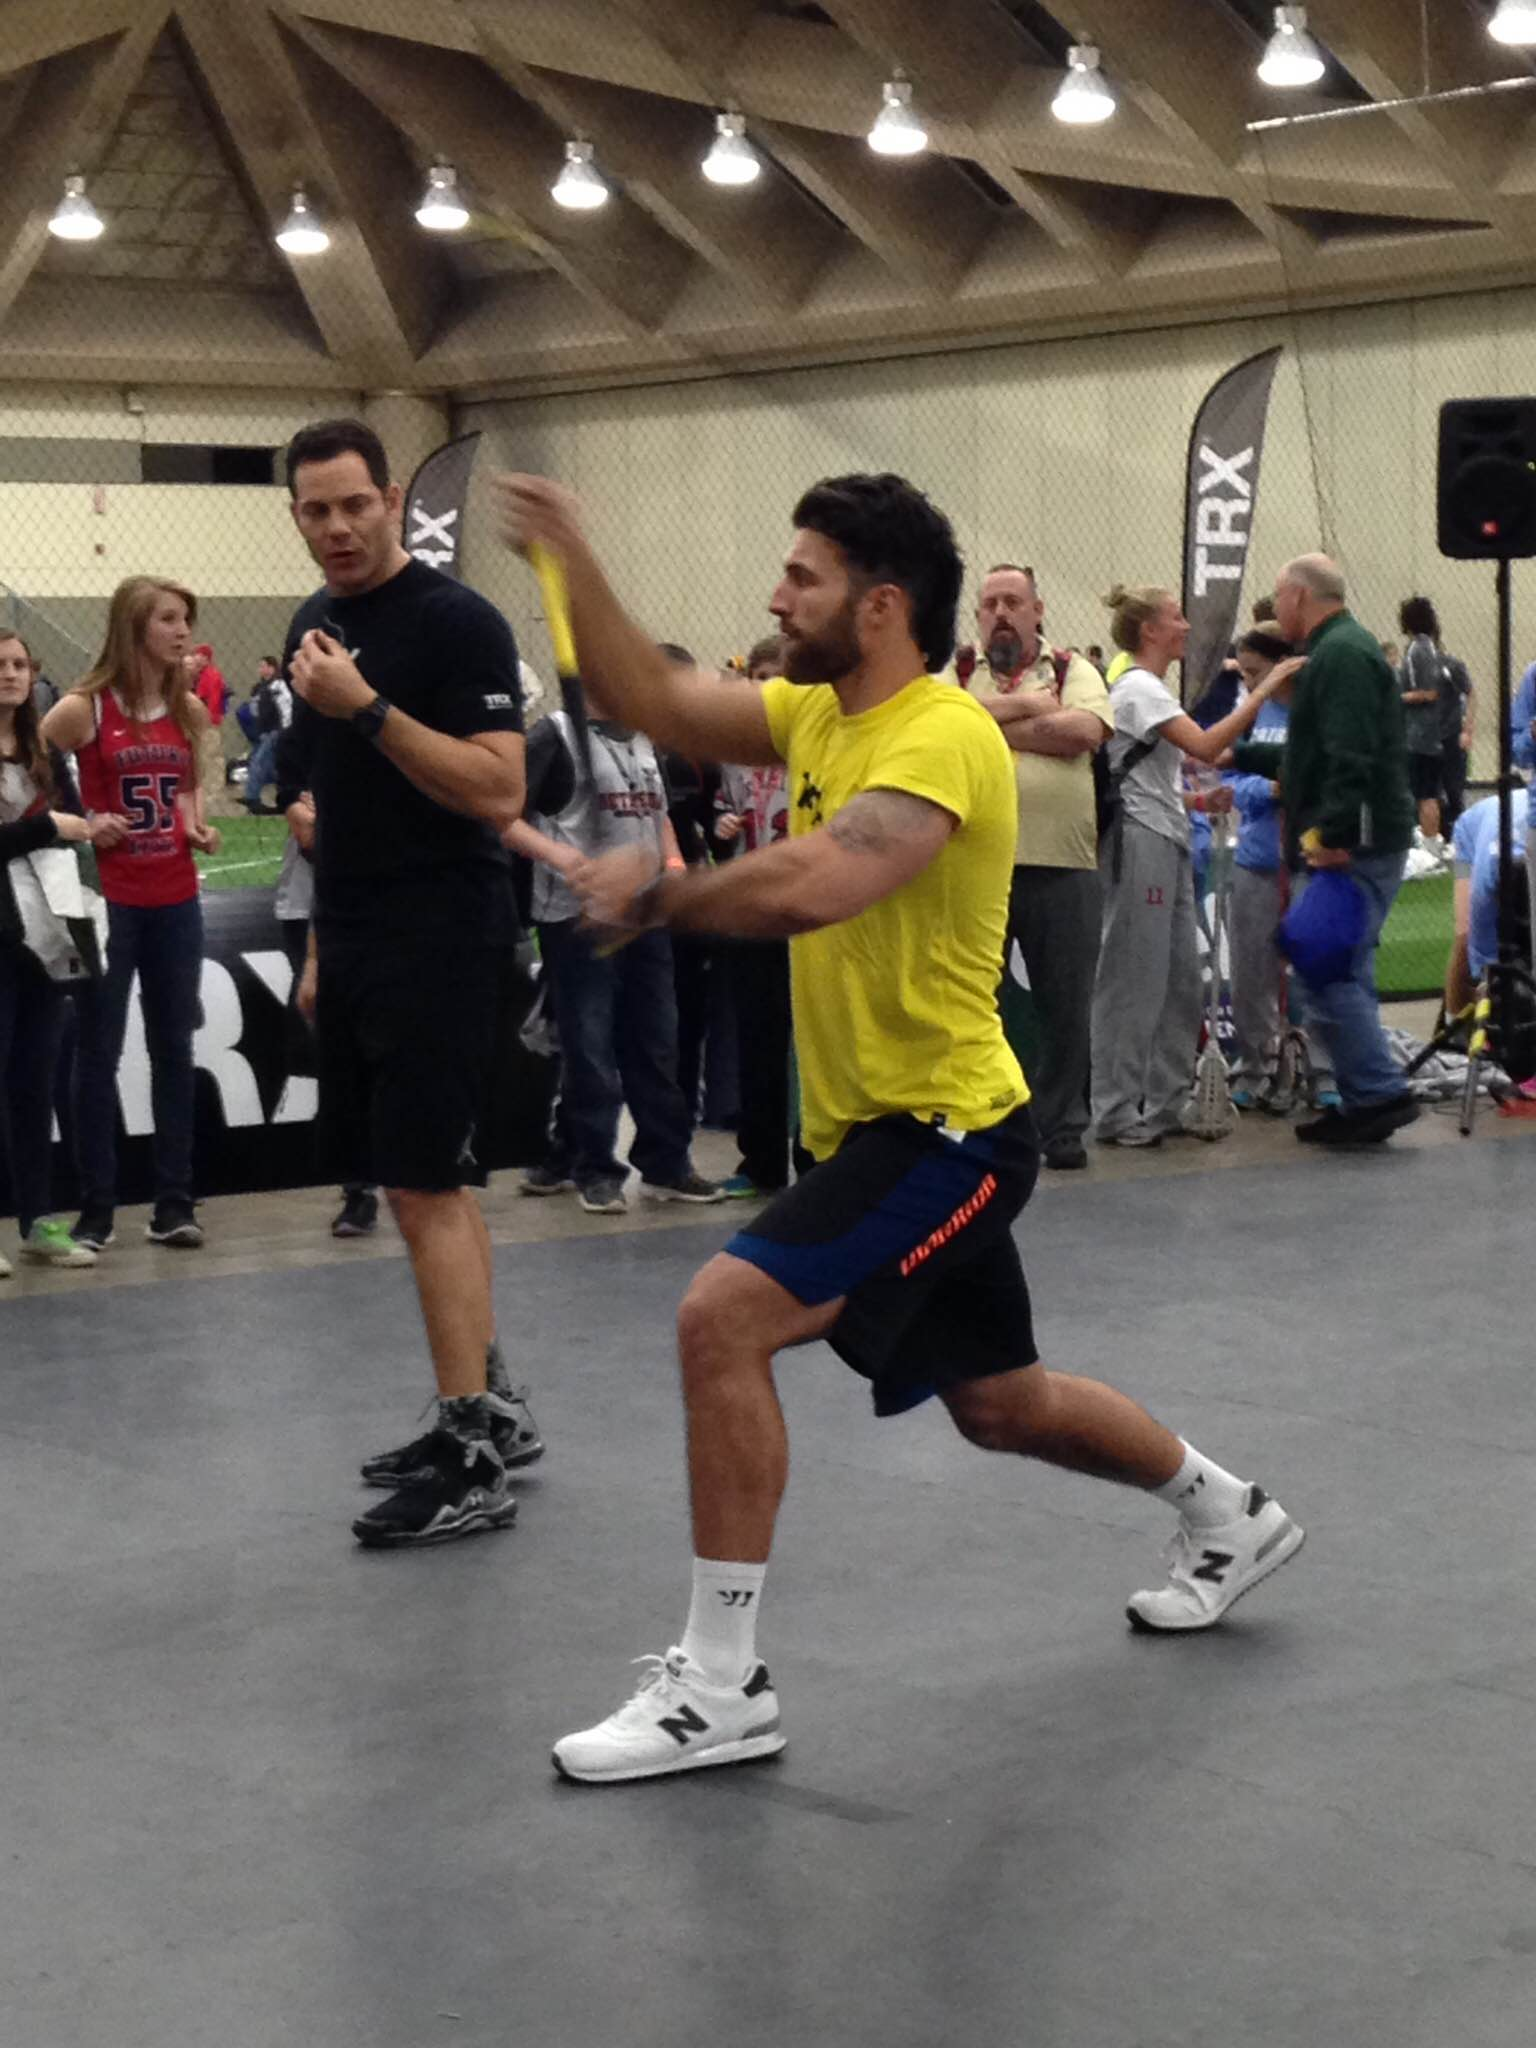 Paul Rabil - Workout2 - Laxcon 2015